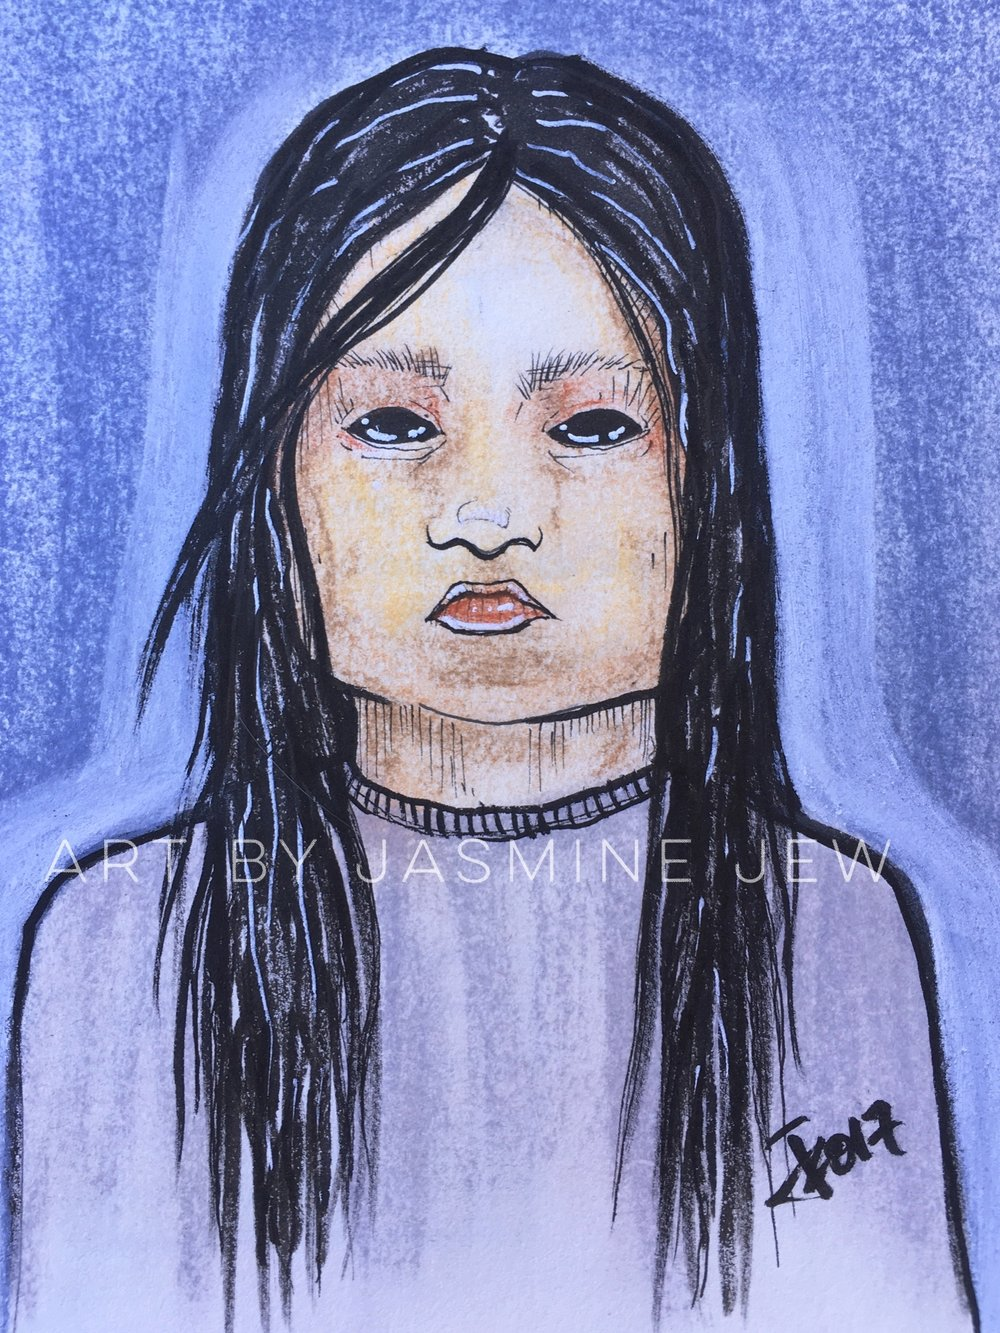 Artwork by Jasmine Jew, depicting the black-eyed girl with a baby stroller she saw at her door late at night in Brownsville, TX.